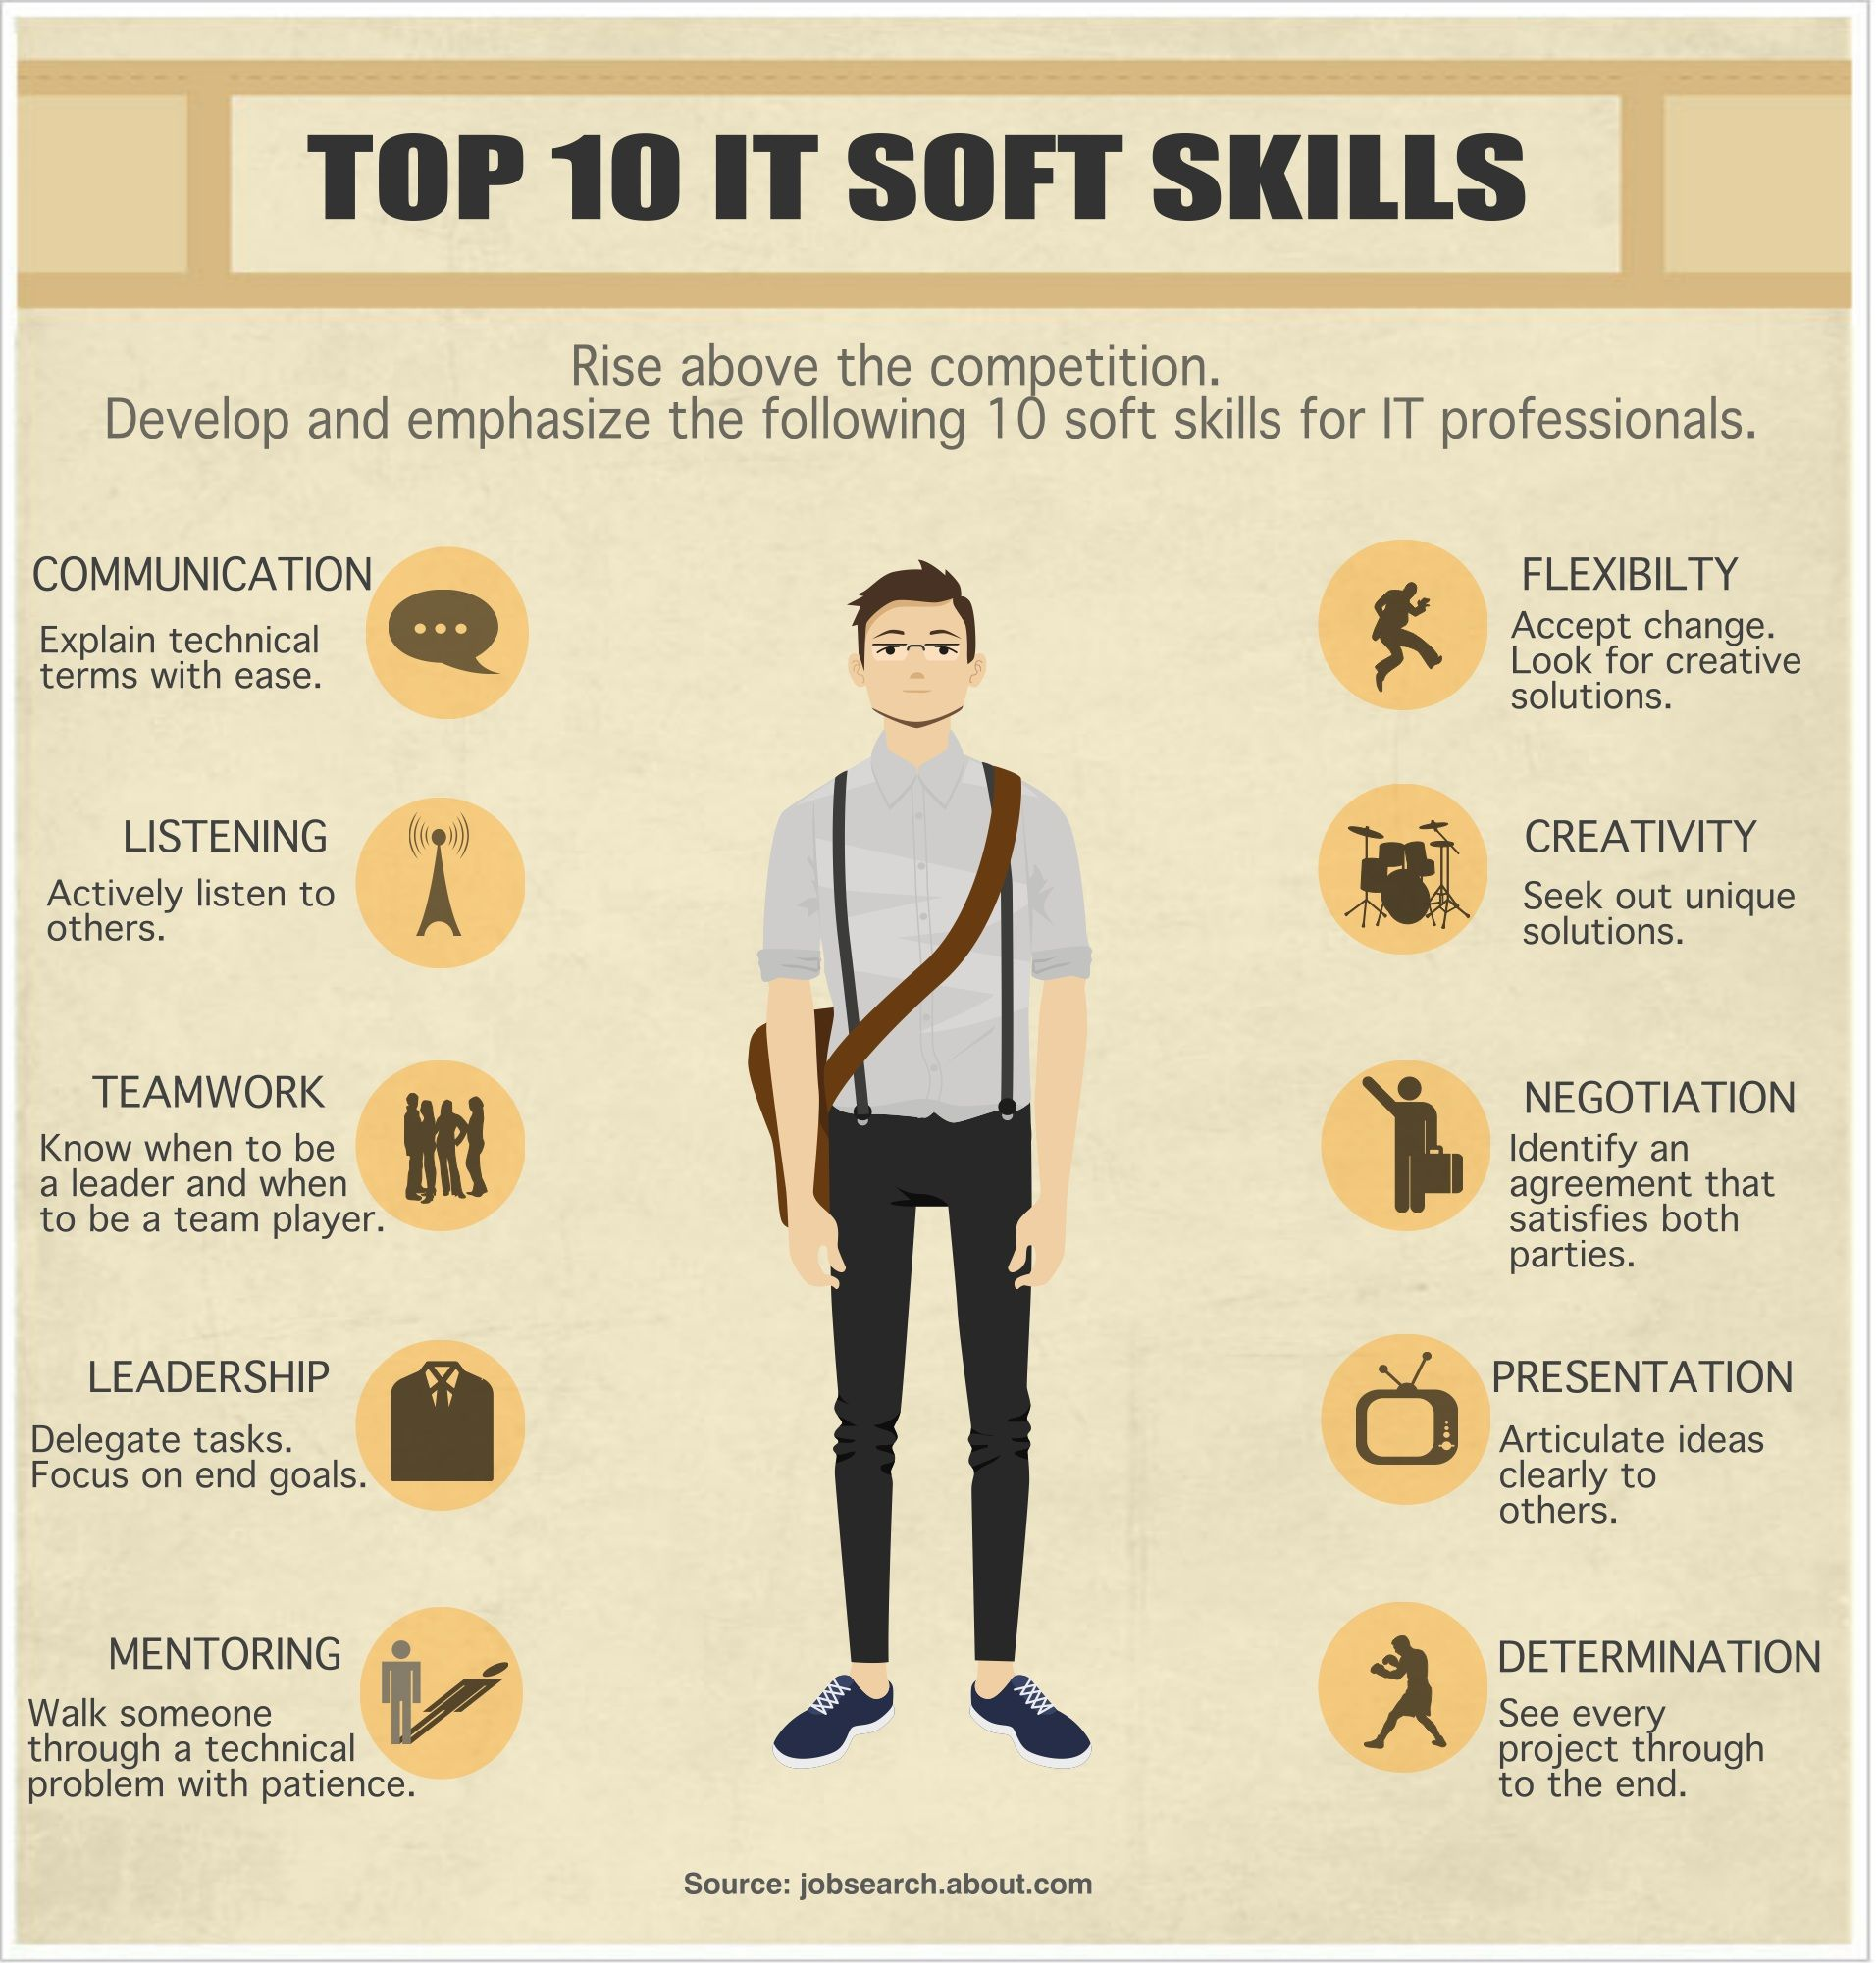 Top 10 It Soft Skills